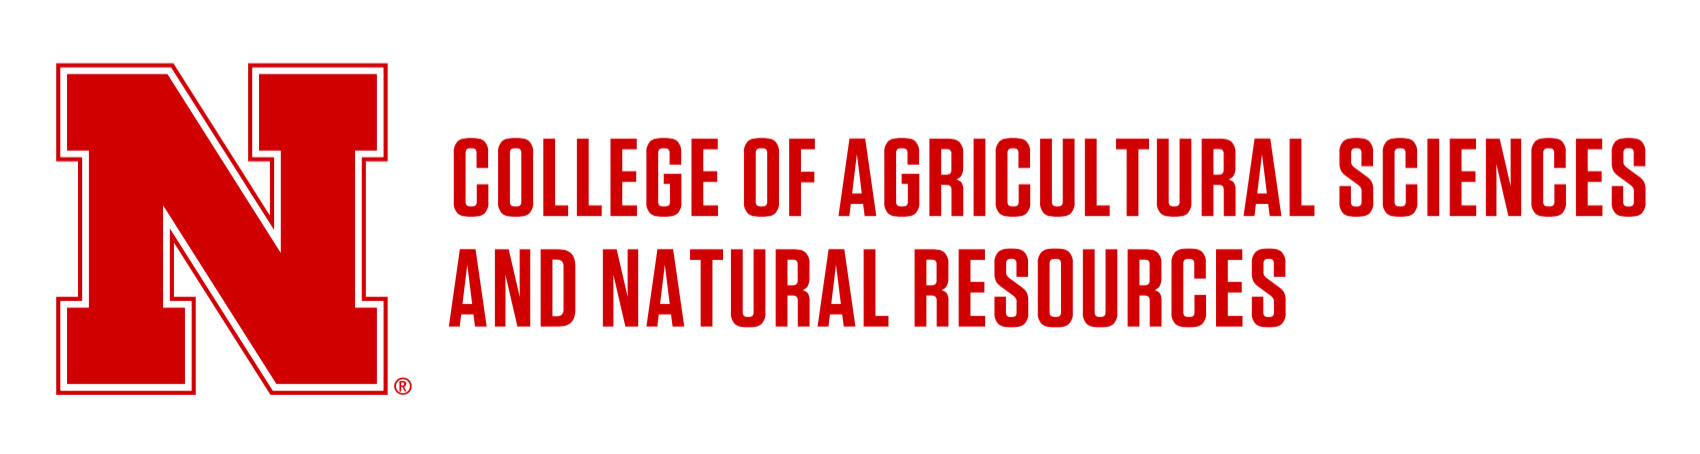 Horizontal lockup - College of Agricultural Sciences and Natural Resources